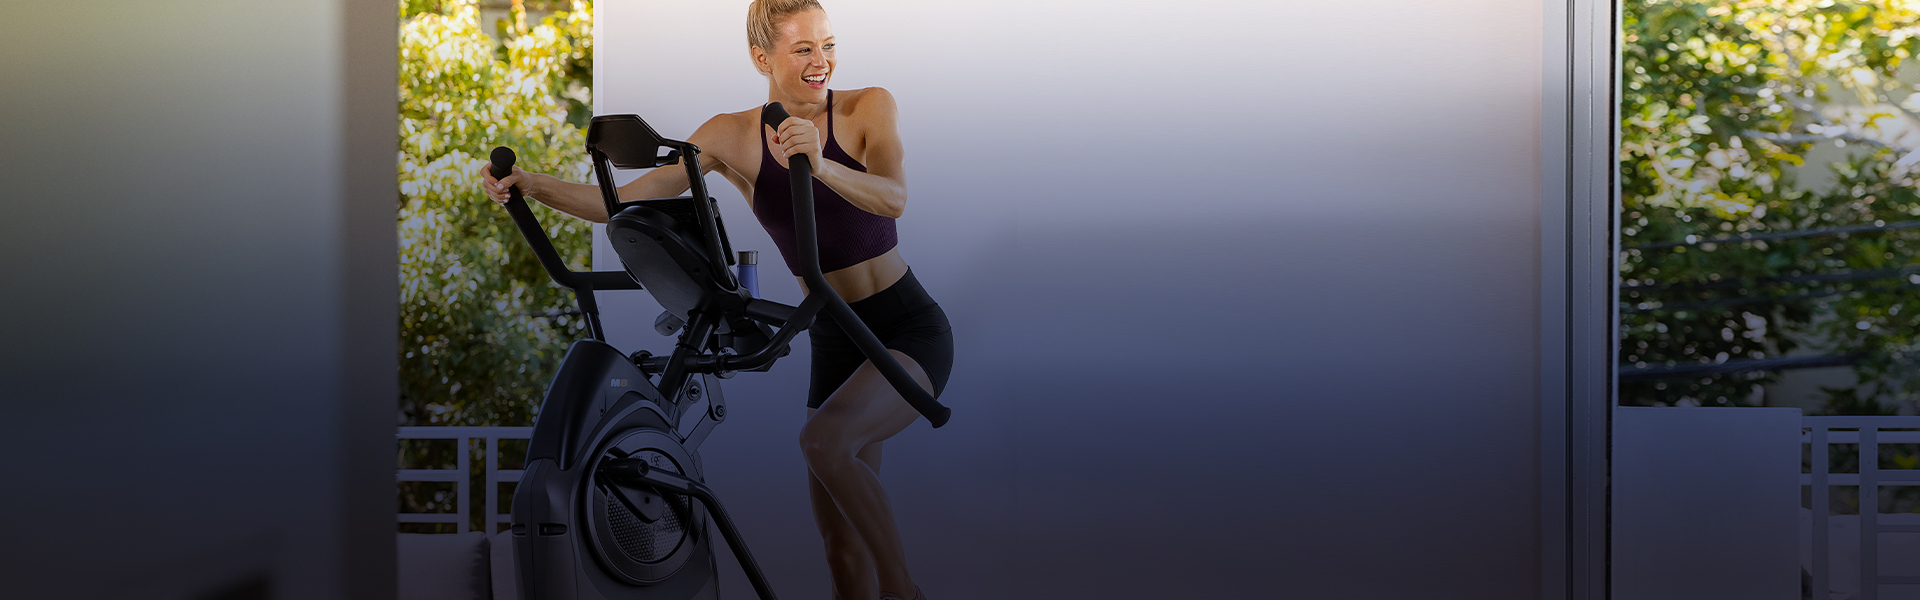 Bowflex Max - now with Max Intelligence Platform